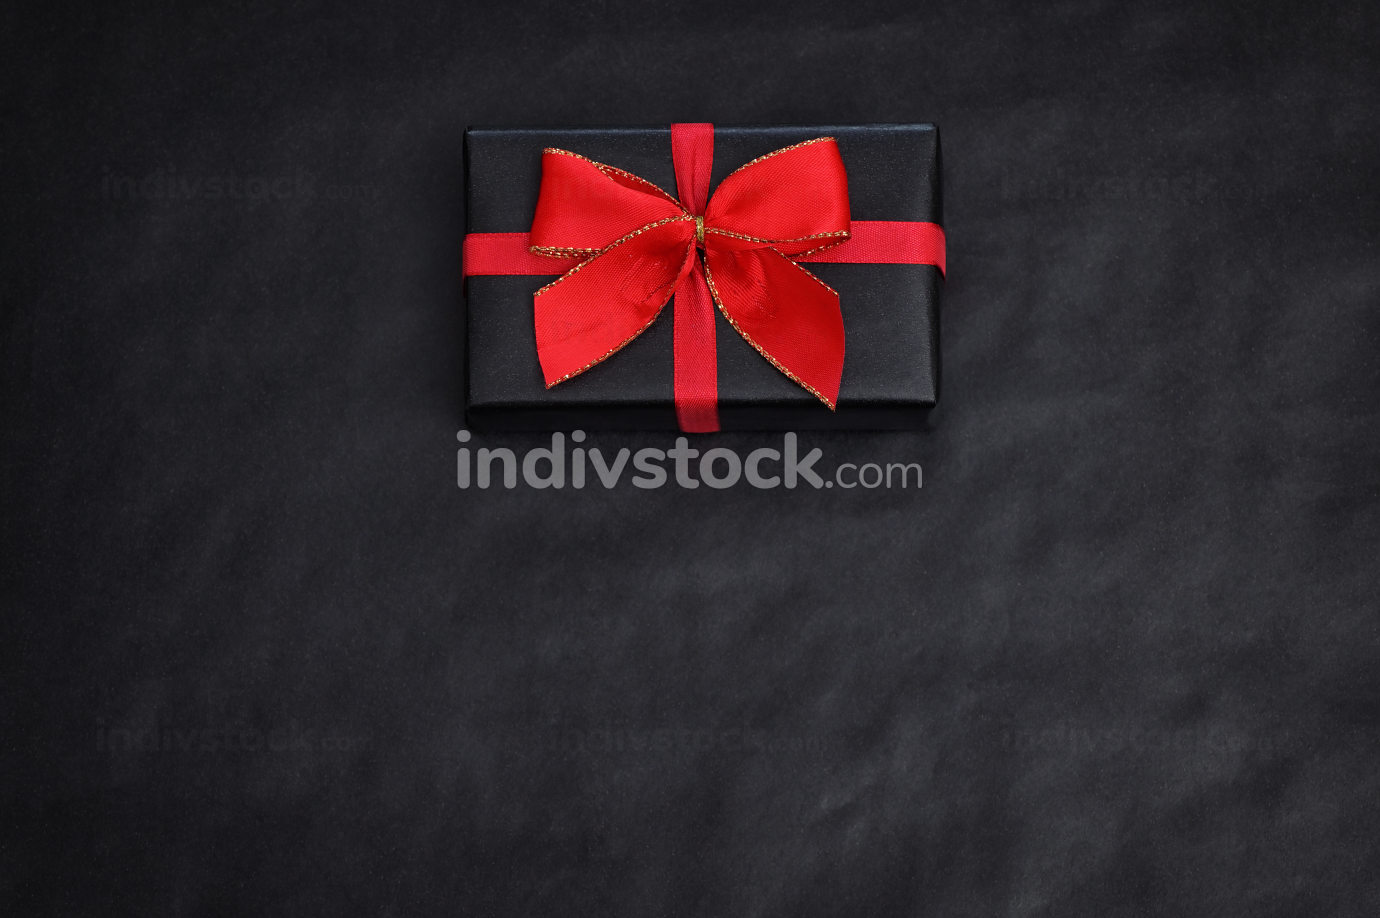 Top View Of Black Paper And A Gift